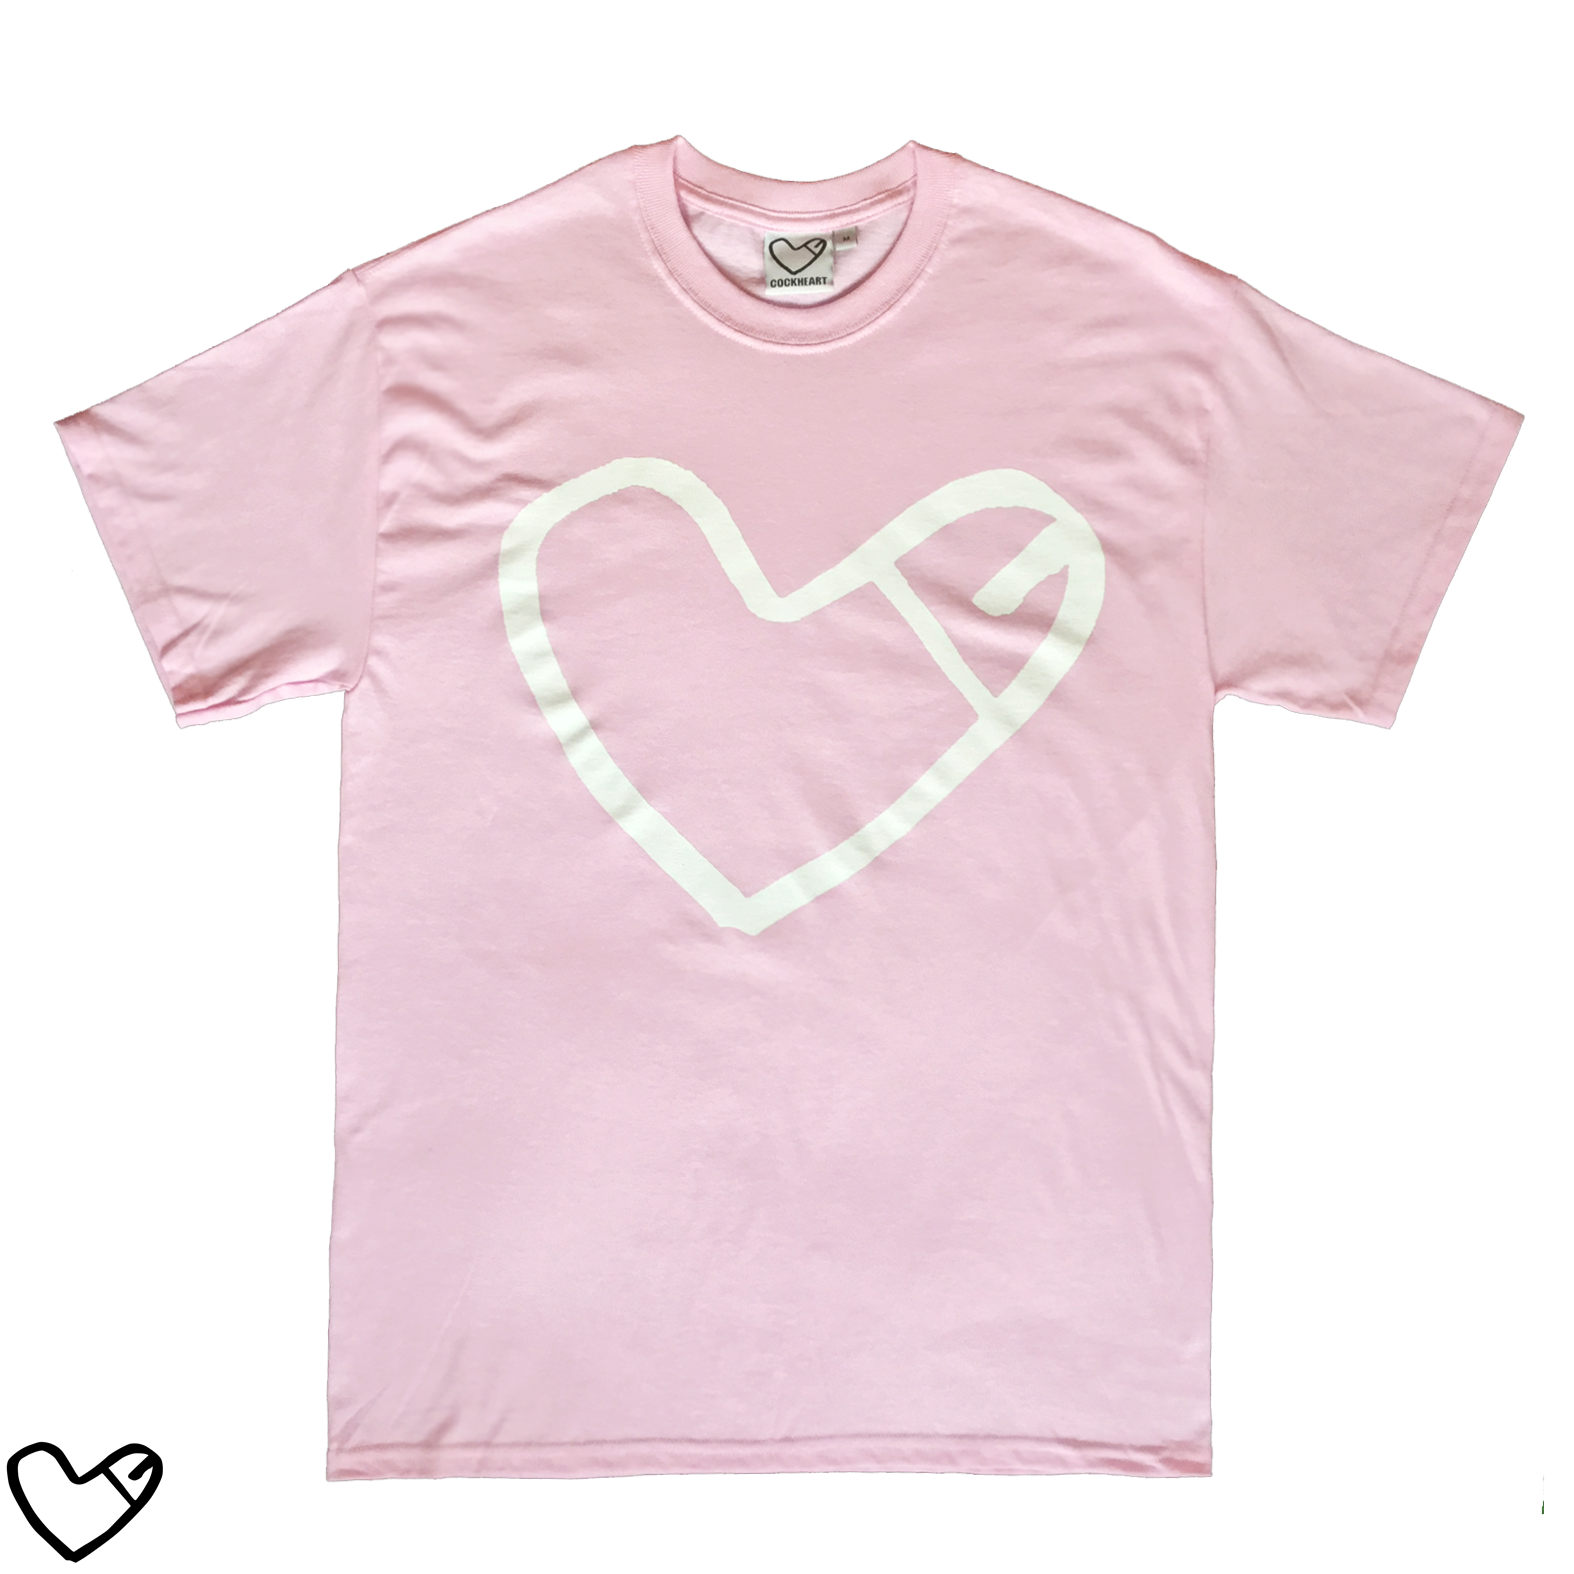 COCKHEART Tシャツ/ピンク